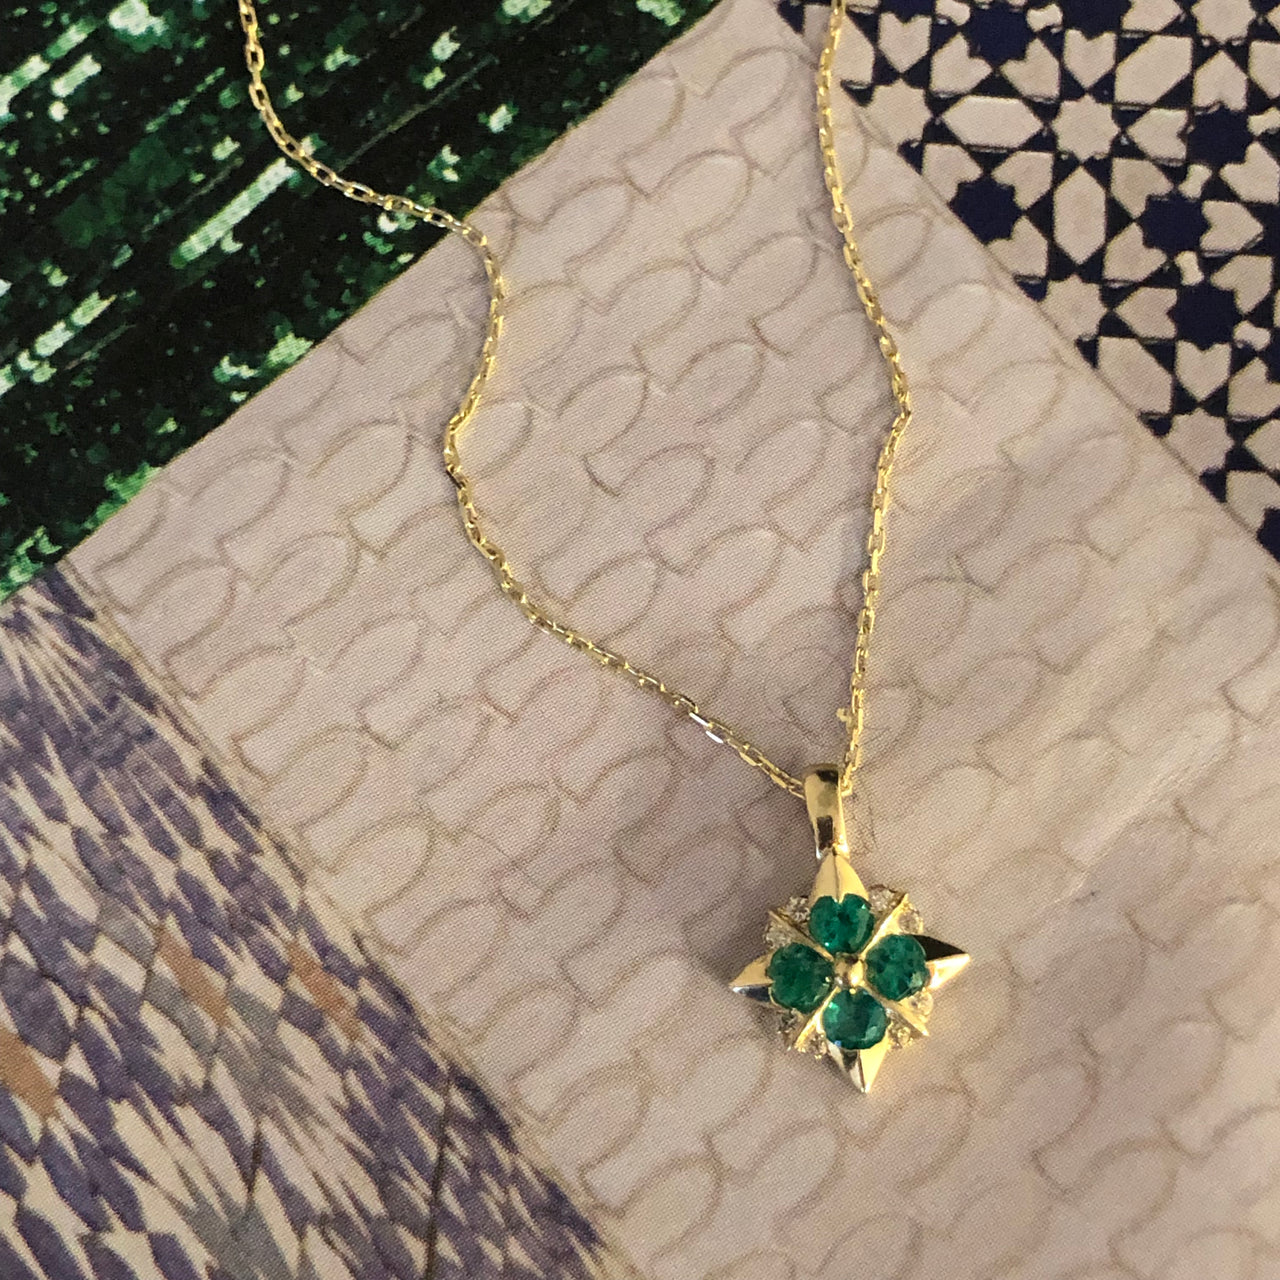 14K Yellow Gold Large Plique Emerald and Diamond Pendant.